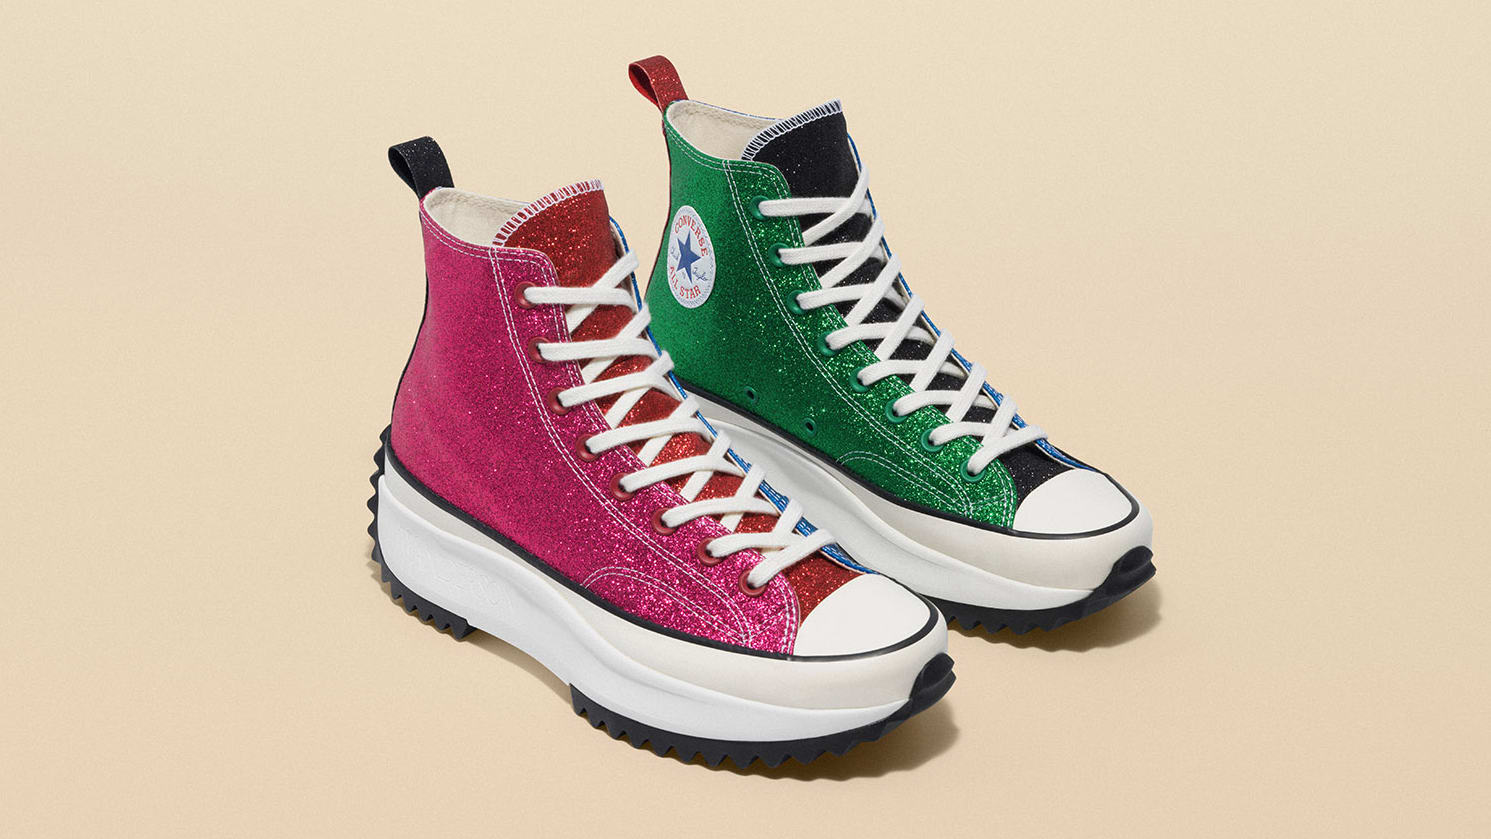 JW Anderson x Converse Run Star Hike 'Glitter' Collection 2